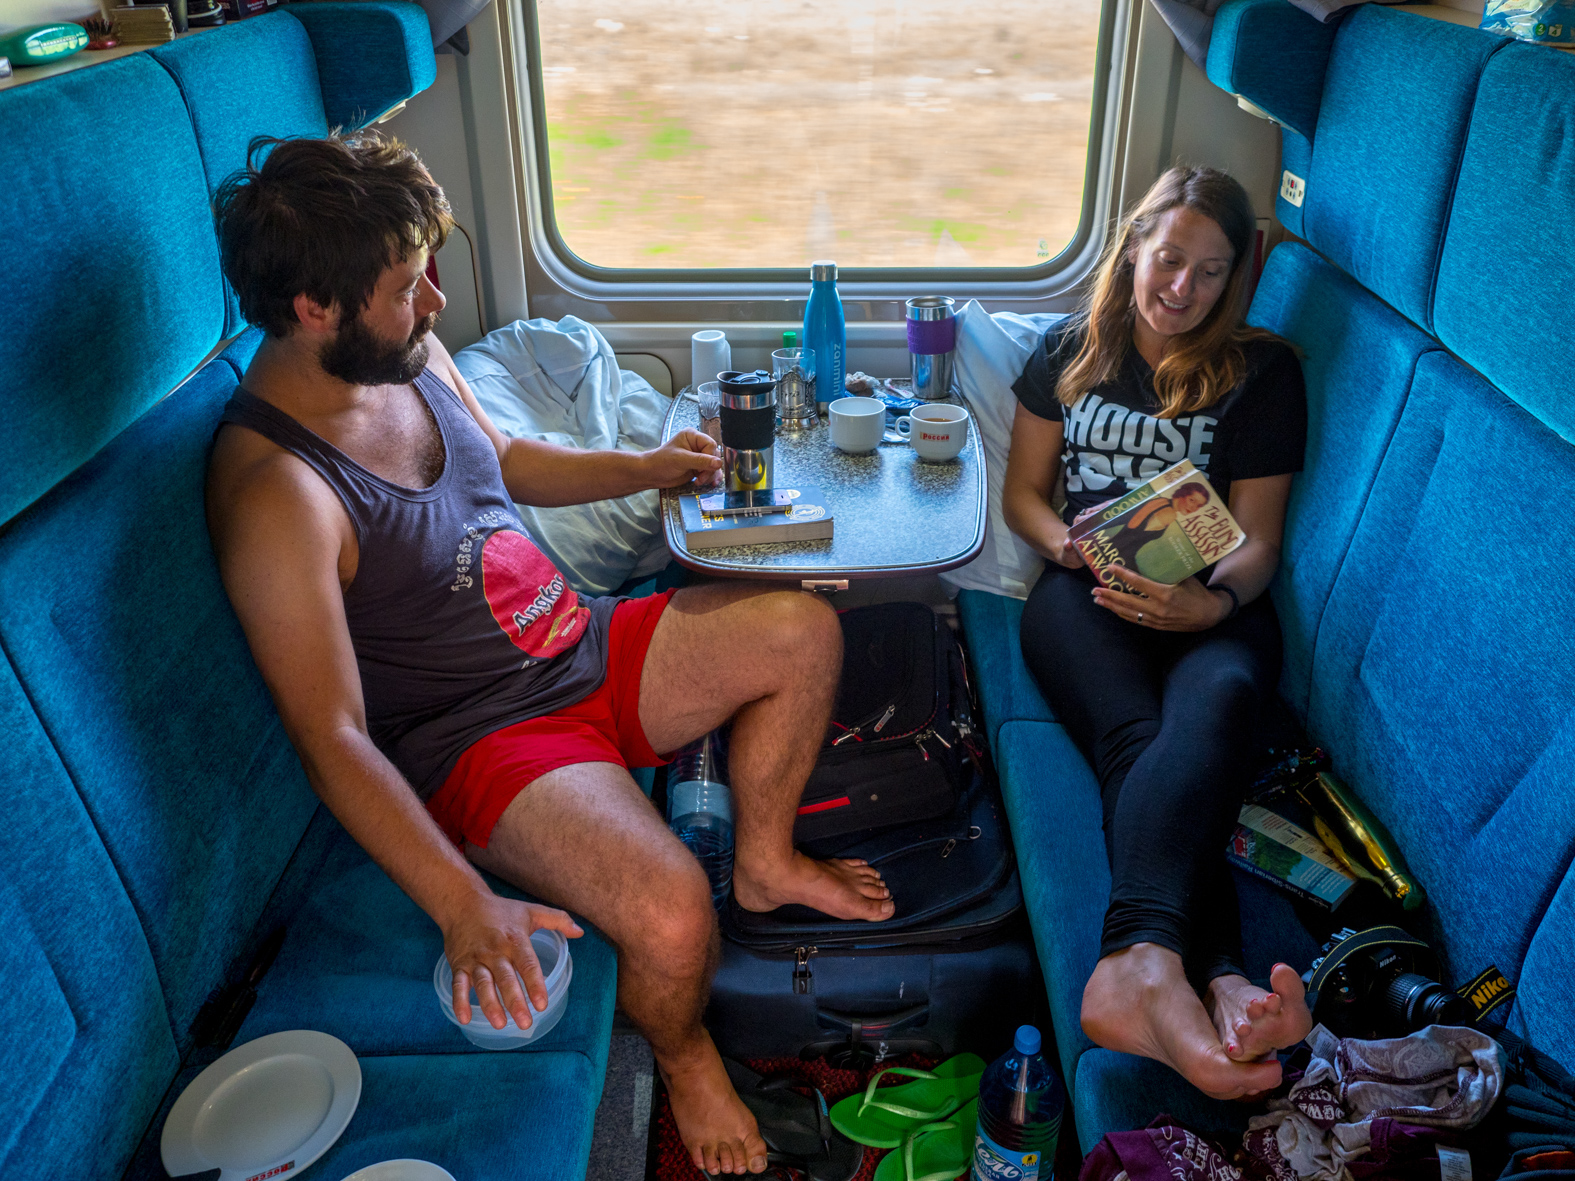 English born Jenna (33) and Australian husband Ben (31), celebrating their honeymoon in a first class carriage cabin on the Trans-Siberian Railway from Moscow-Vladivostok. Spanning a length of 9,289km, it's the longest uninterrupted single country train journey in the world. It has connected Moscow with Vladivostok since 1916, and is still being expanded. It was built between 1891 and 1916 under the supervision of Russian government ministers personally appointed by Tsar Alexander III and his son, the Tsarevich Nicholas (later Tsar Nicholas II).